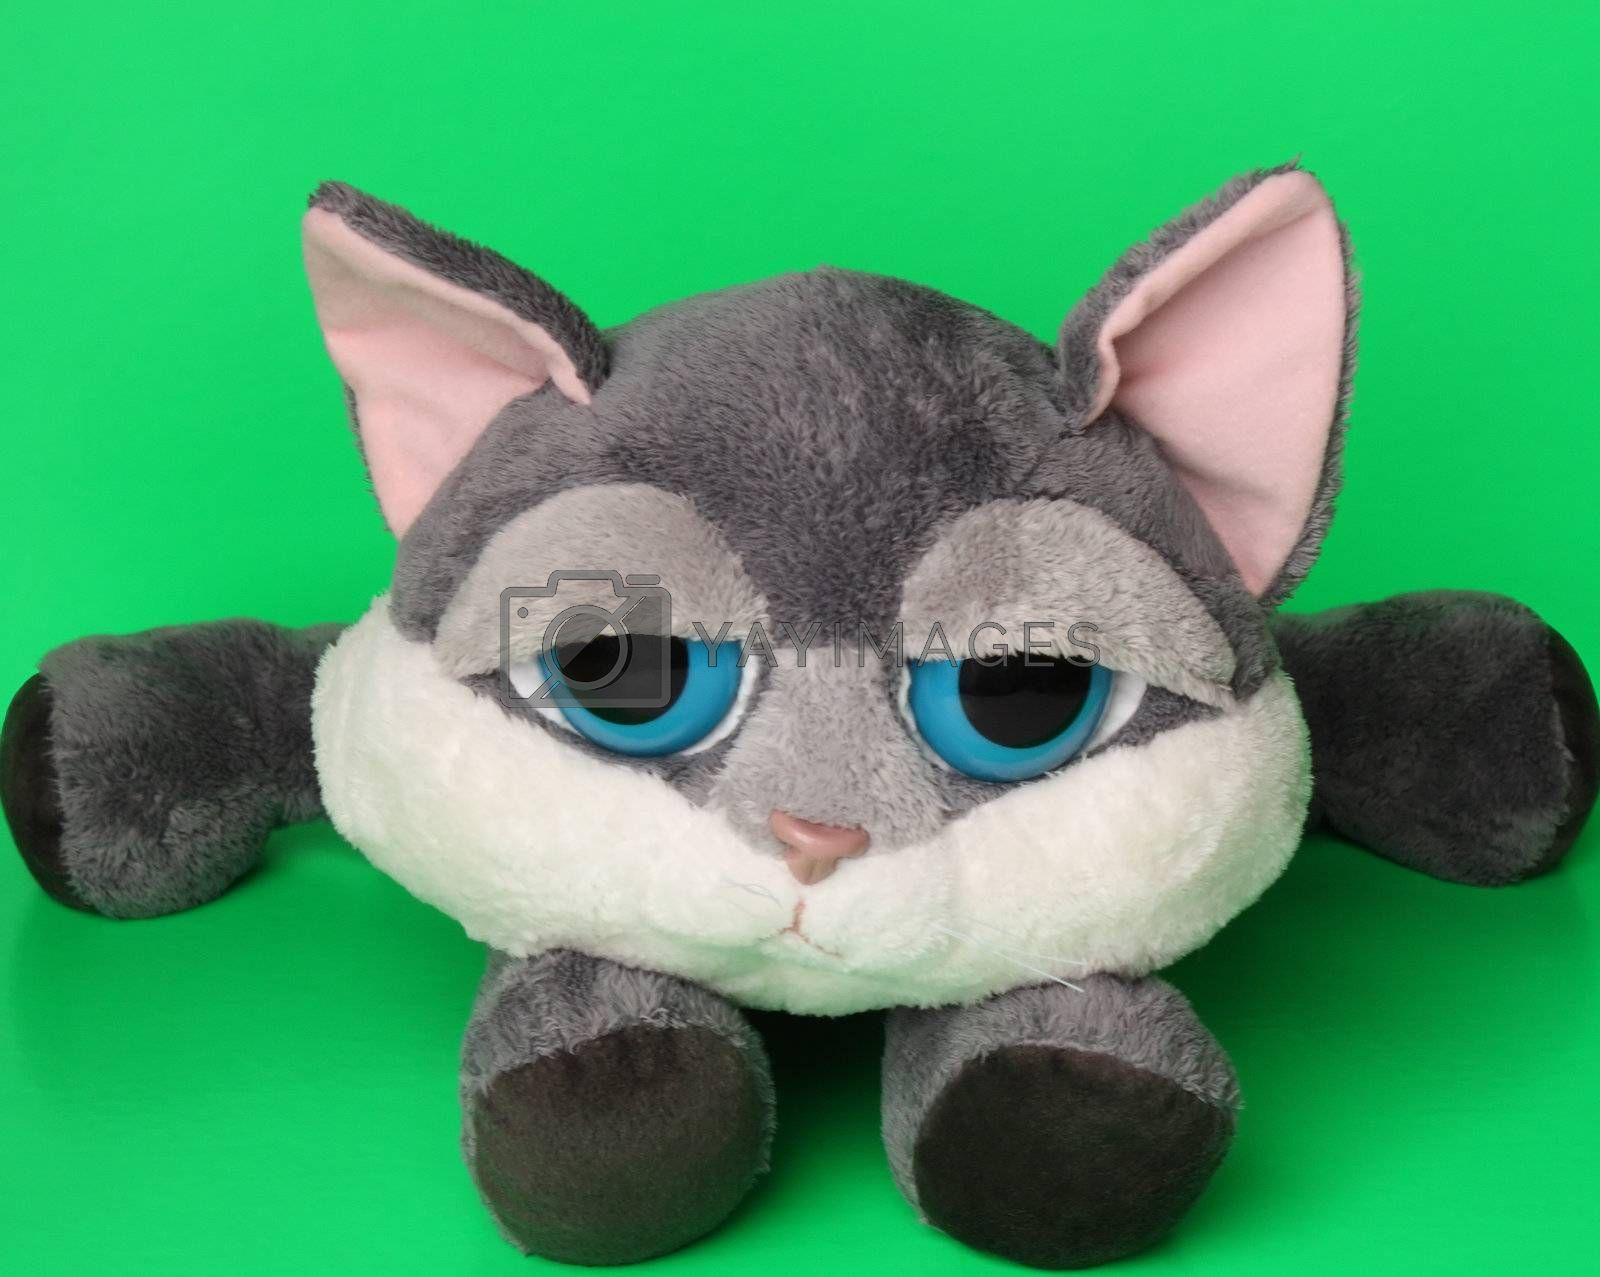 Soft baby cat toy on a green background